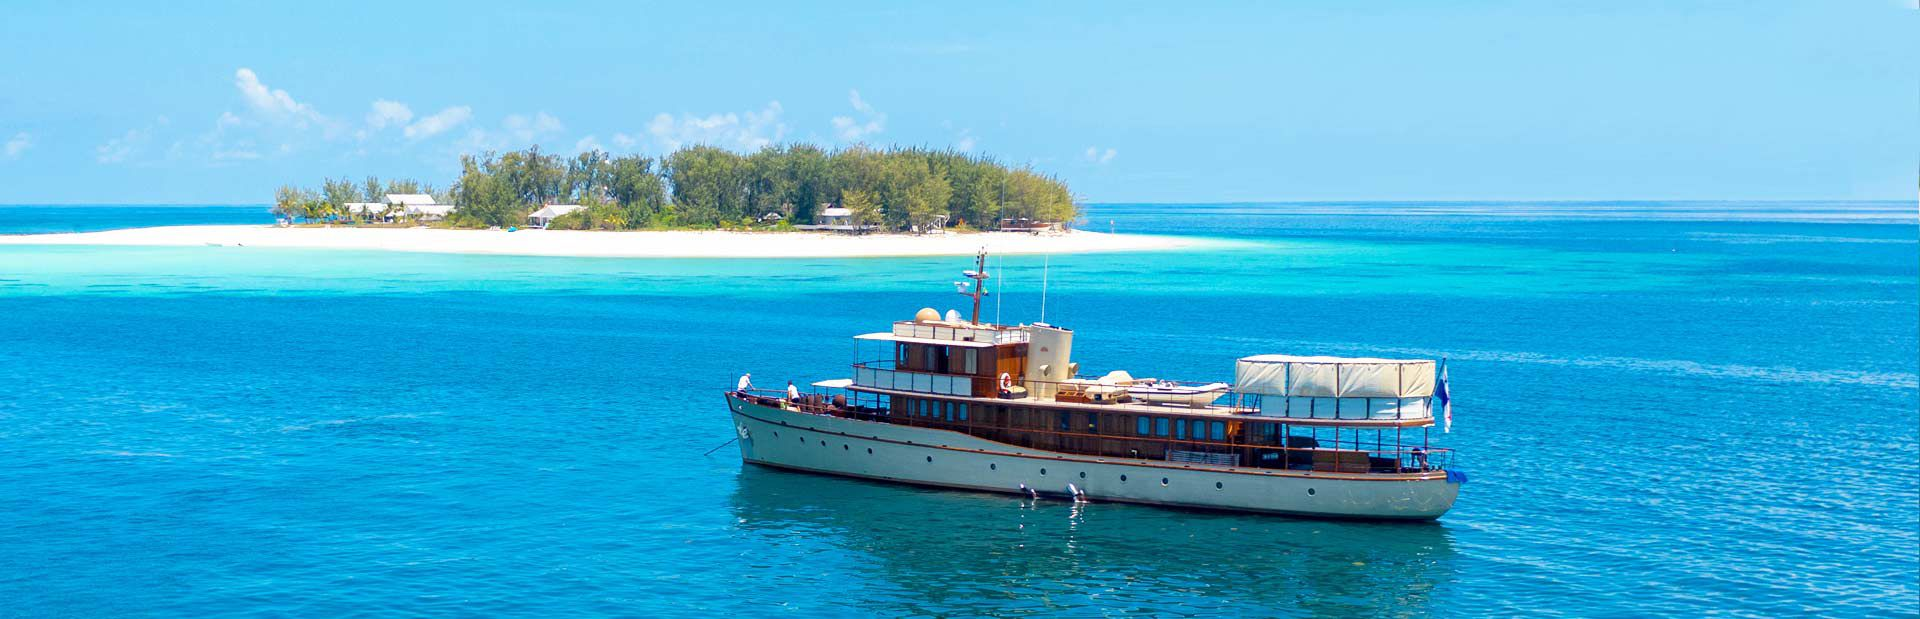 Motor Yacht Over The Rainbow at Anchor in front of Thanda Island